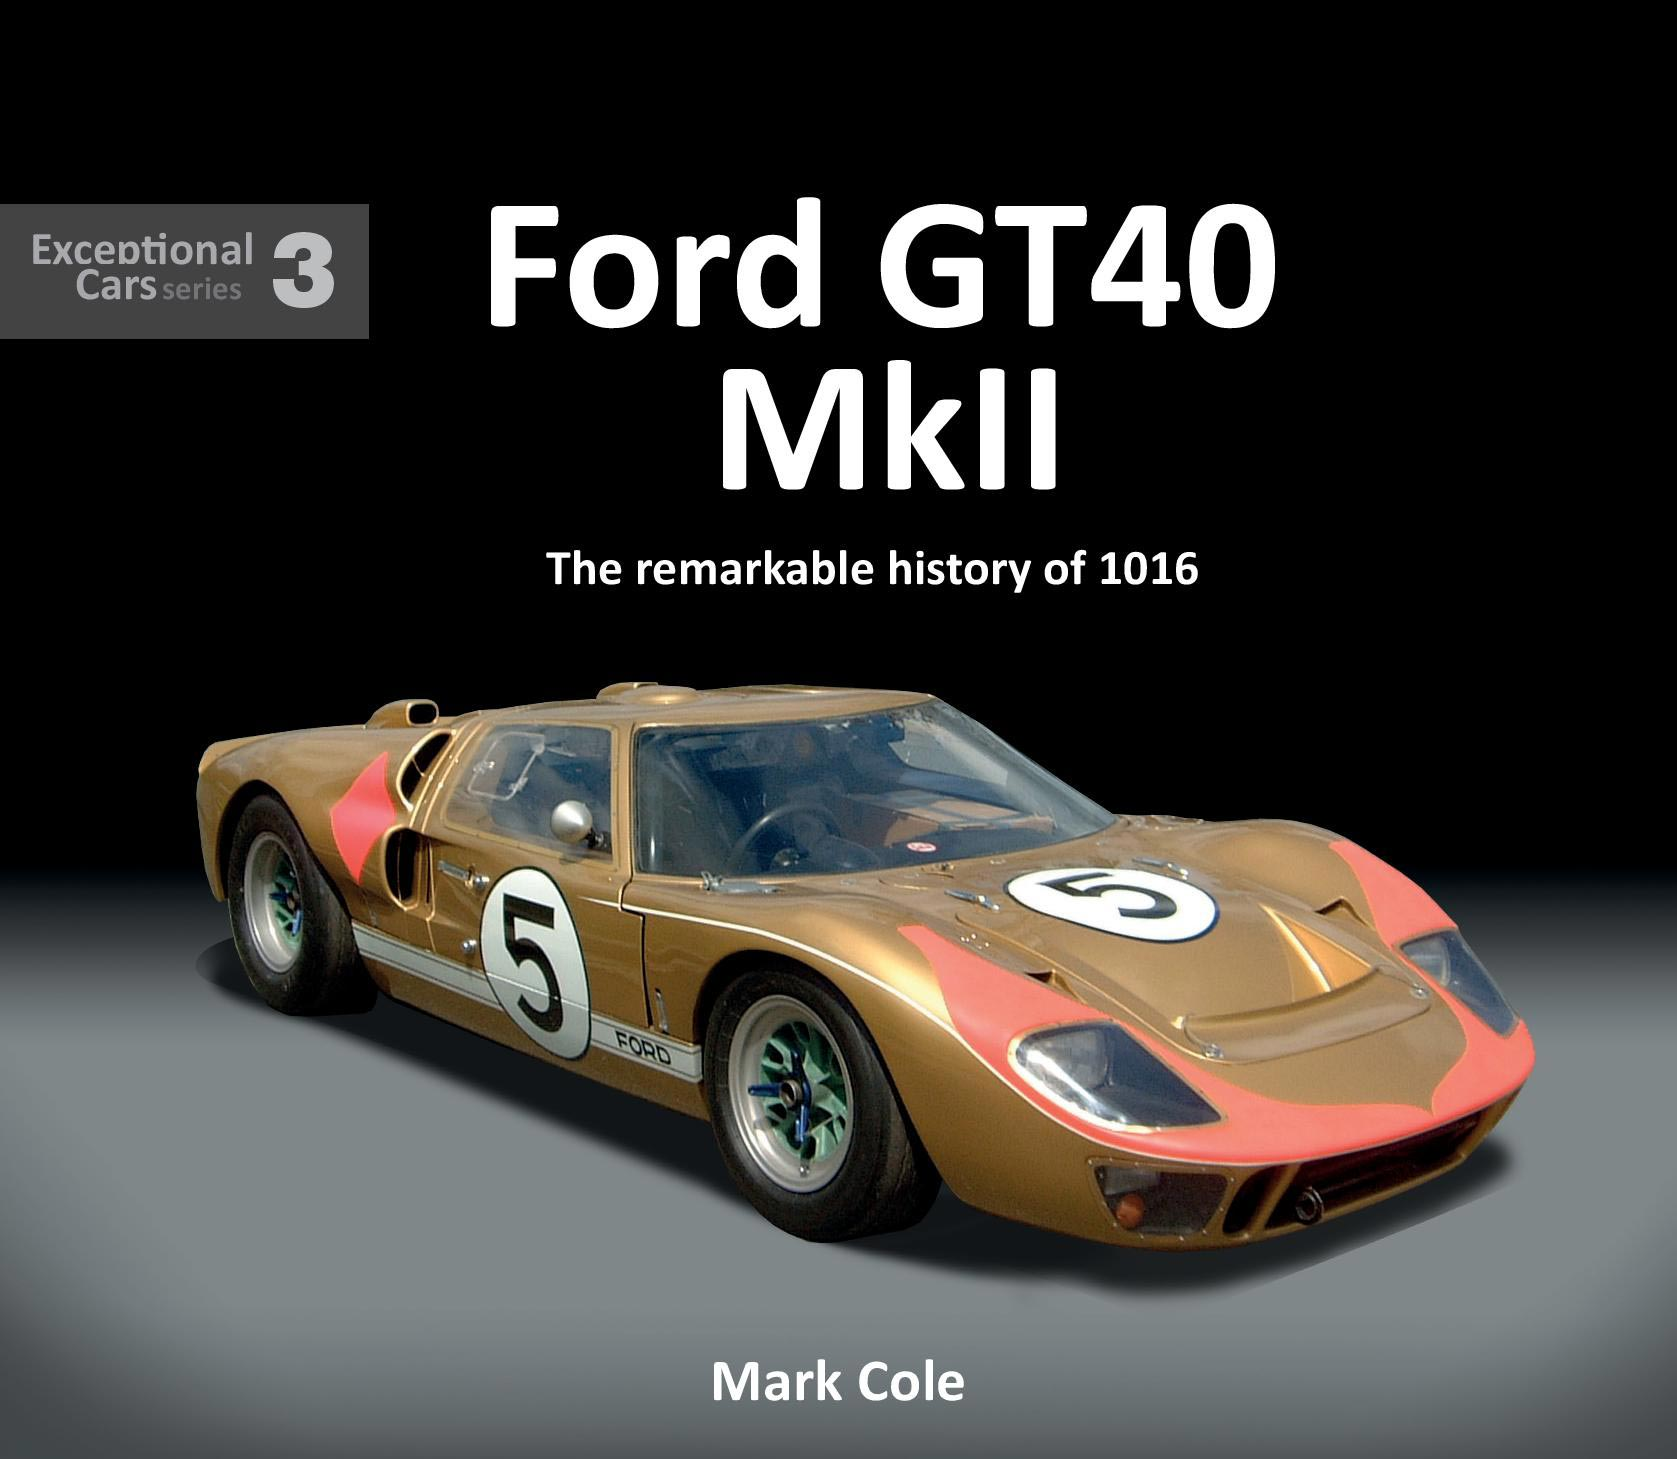 Ford GT40 Mk II - The Remarkable History of 1016